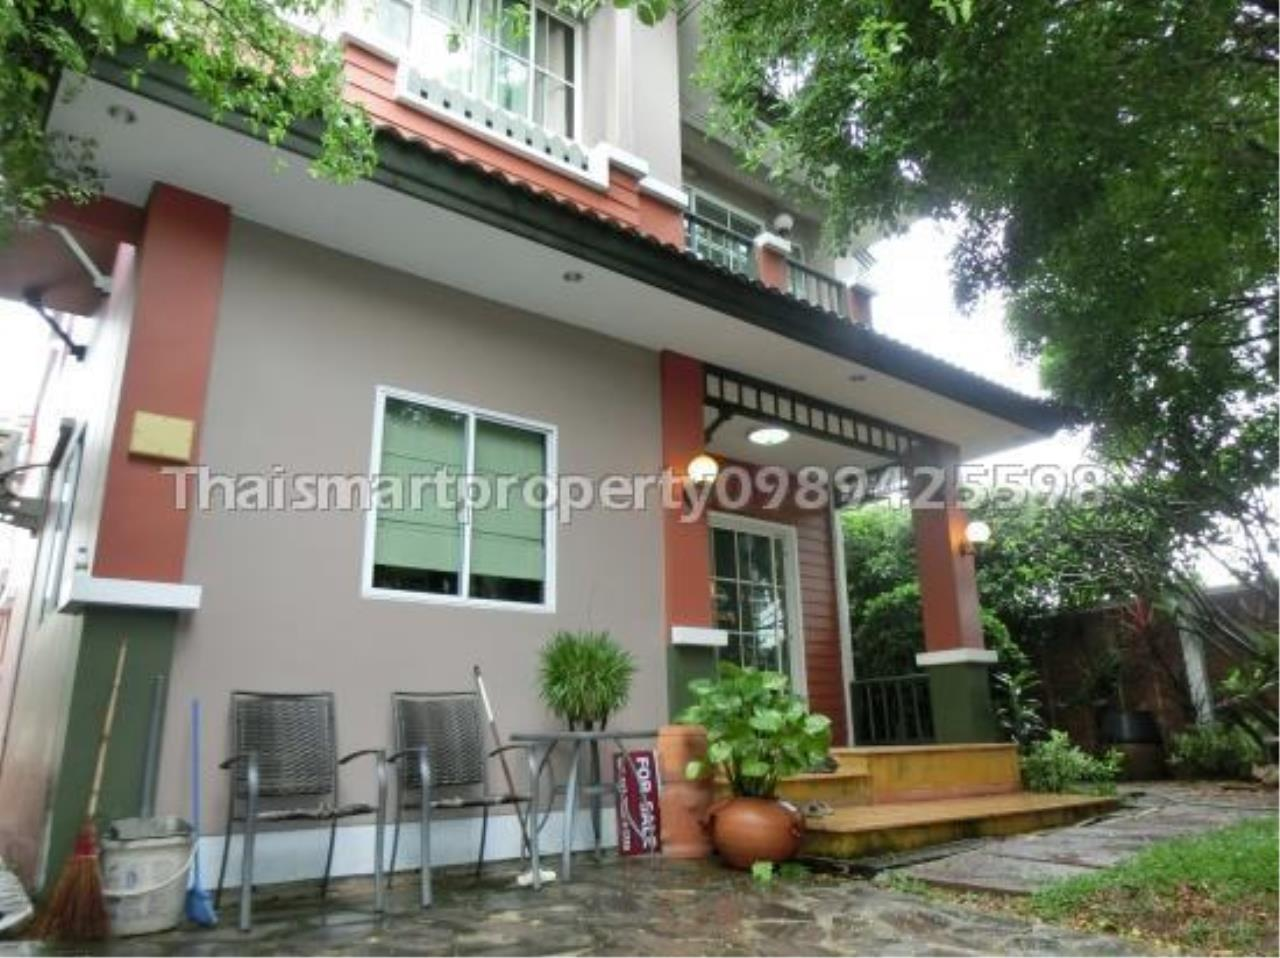 Thai Smart Property Agency's Chaiyapruek Village Rangsit Klong 4 single detached house. 2